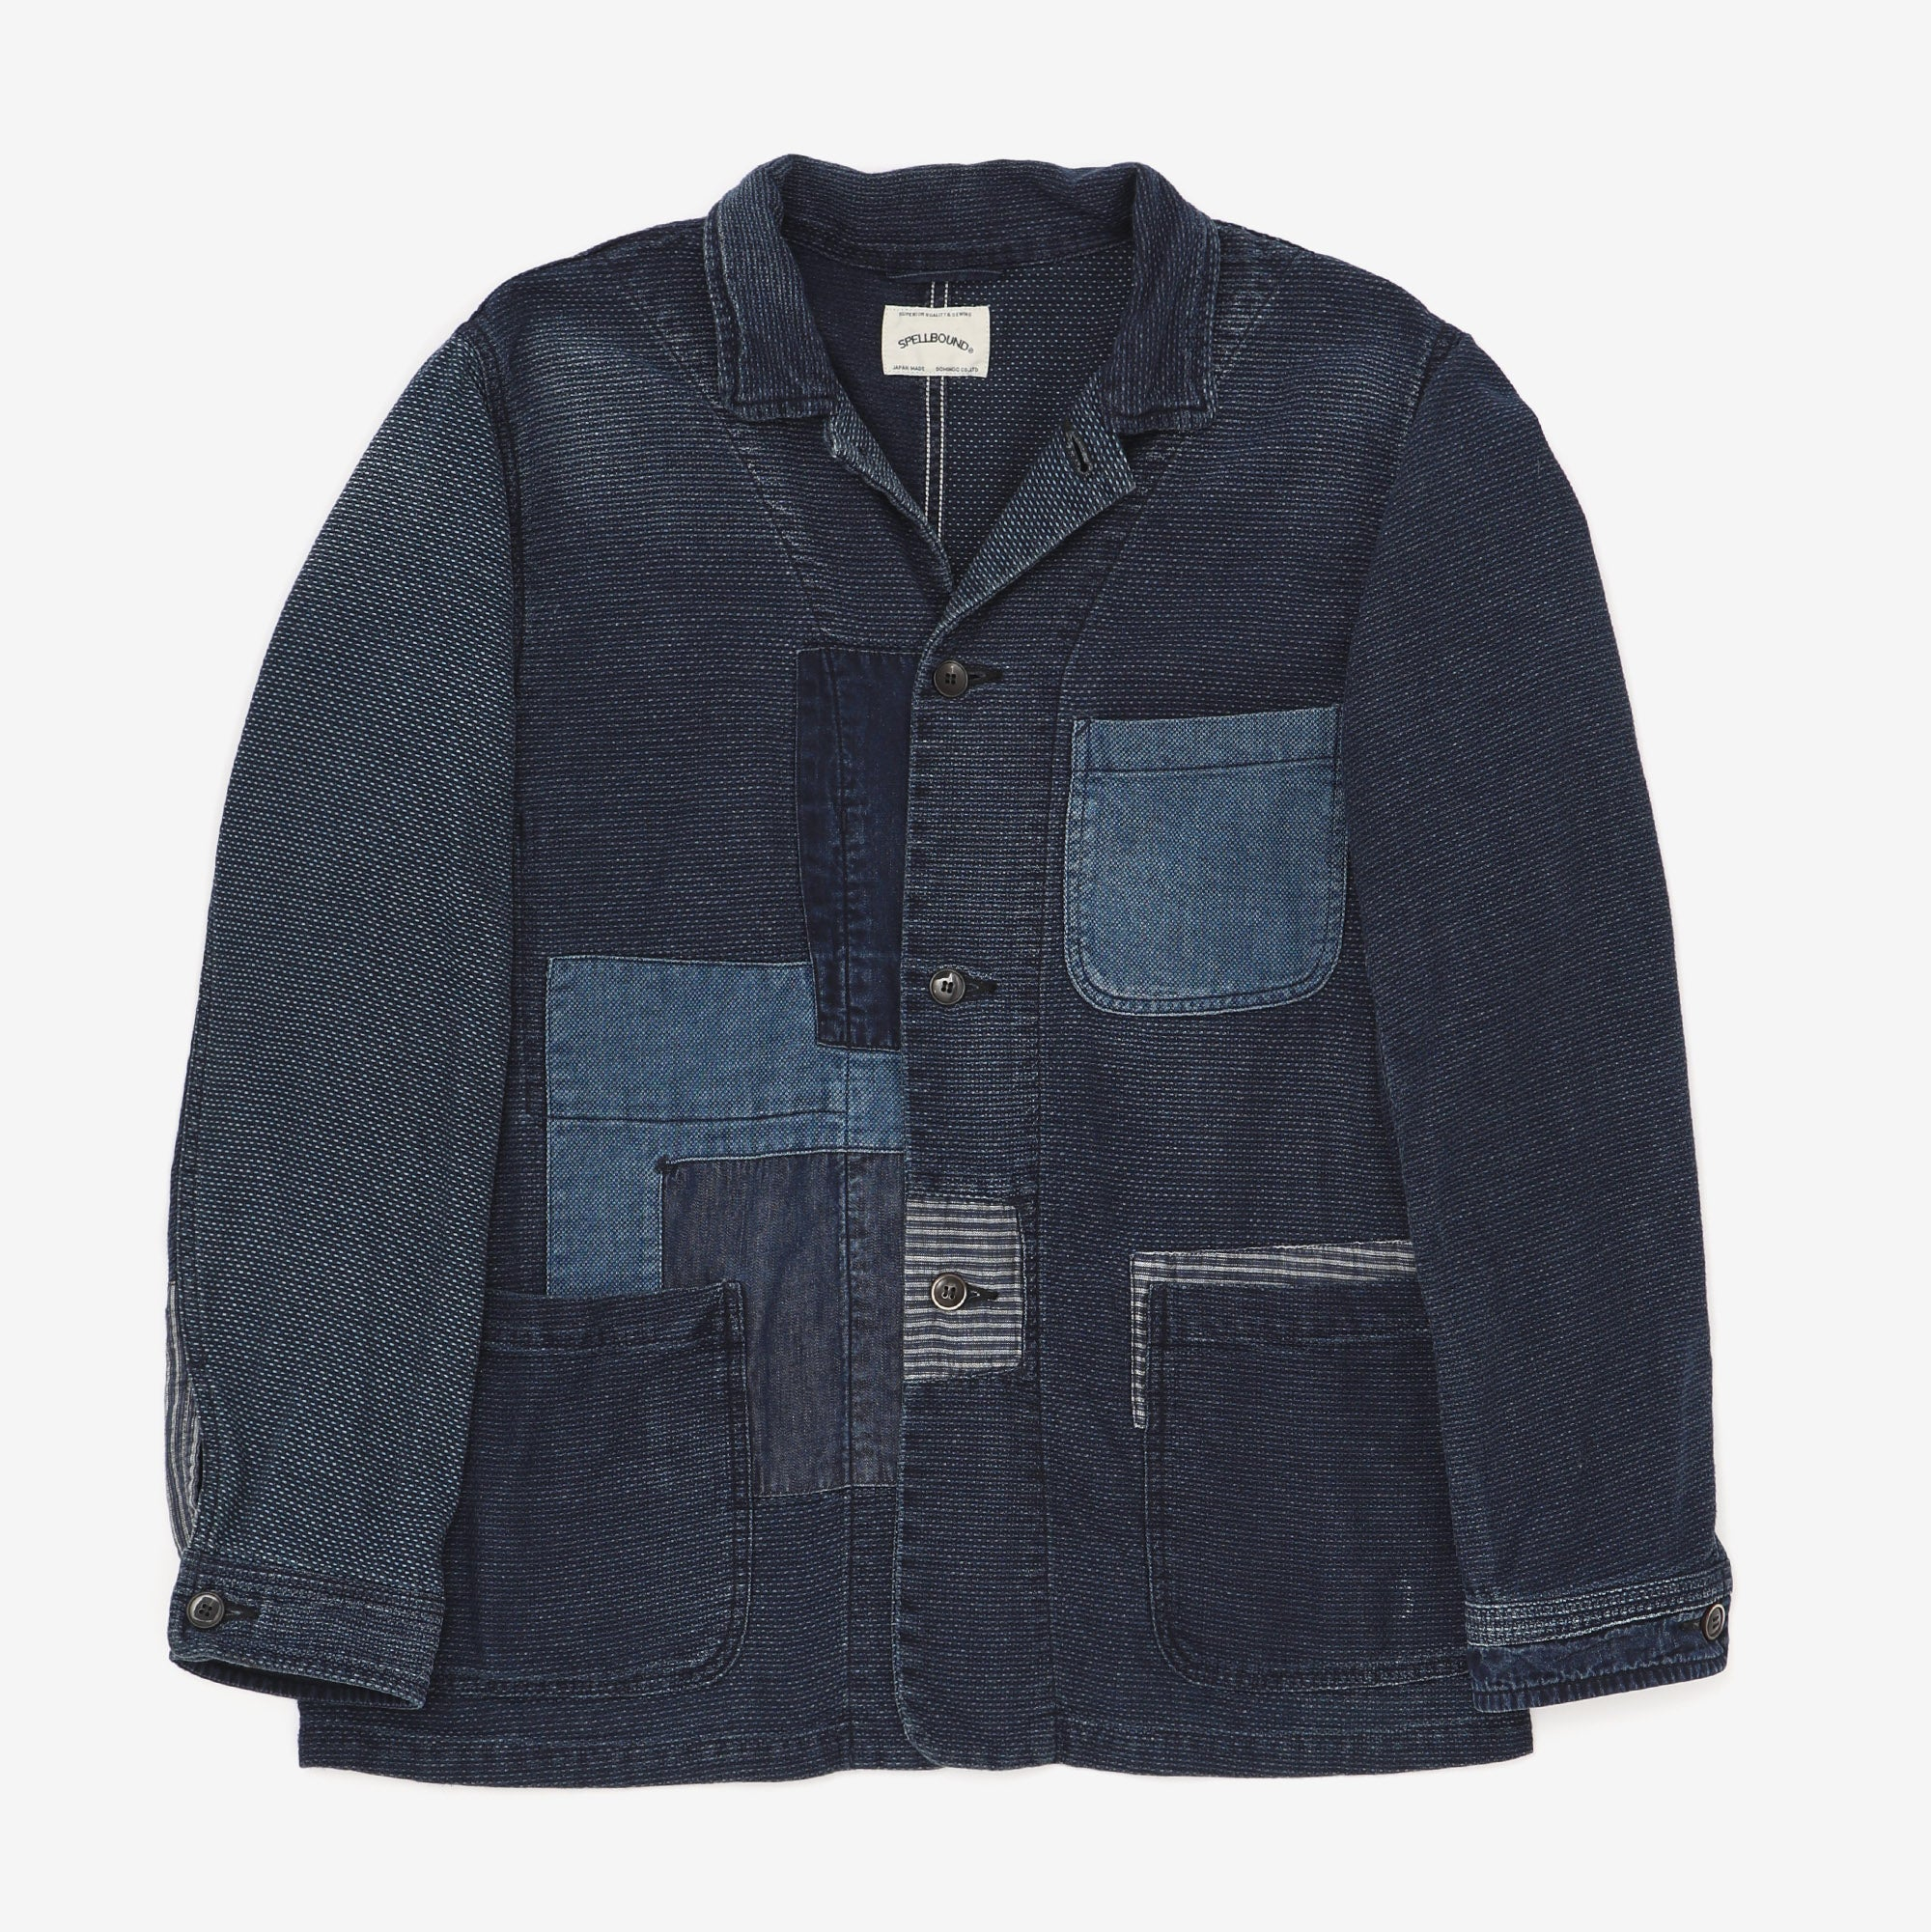 Sashiko Patch Work Chore Coat